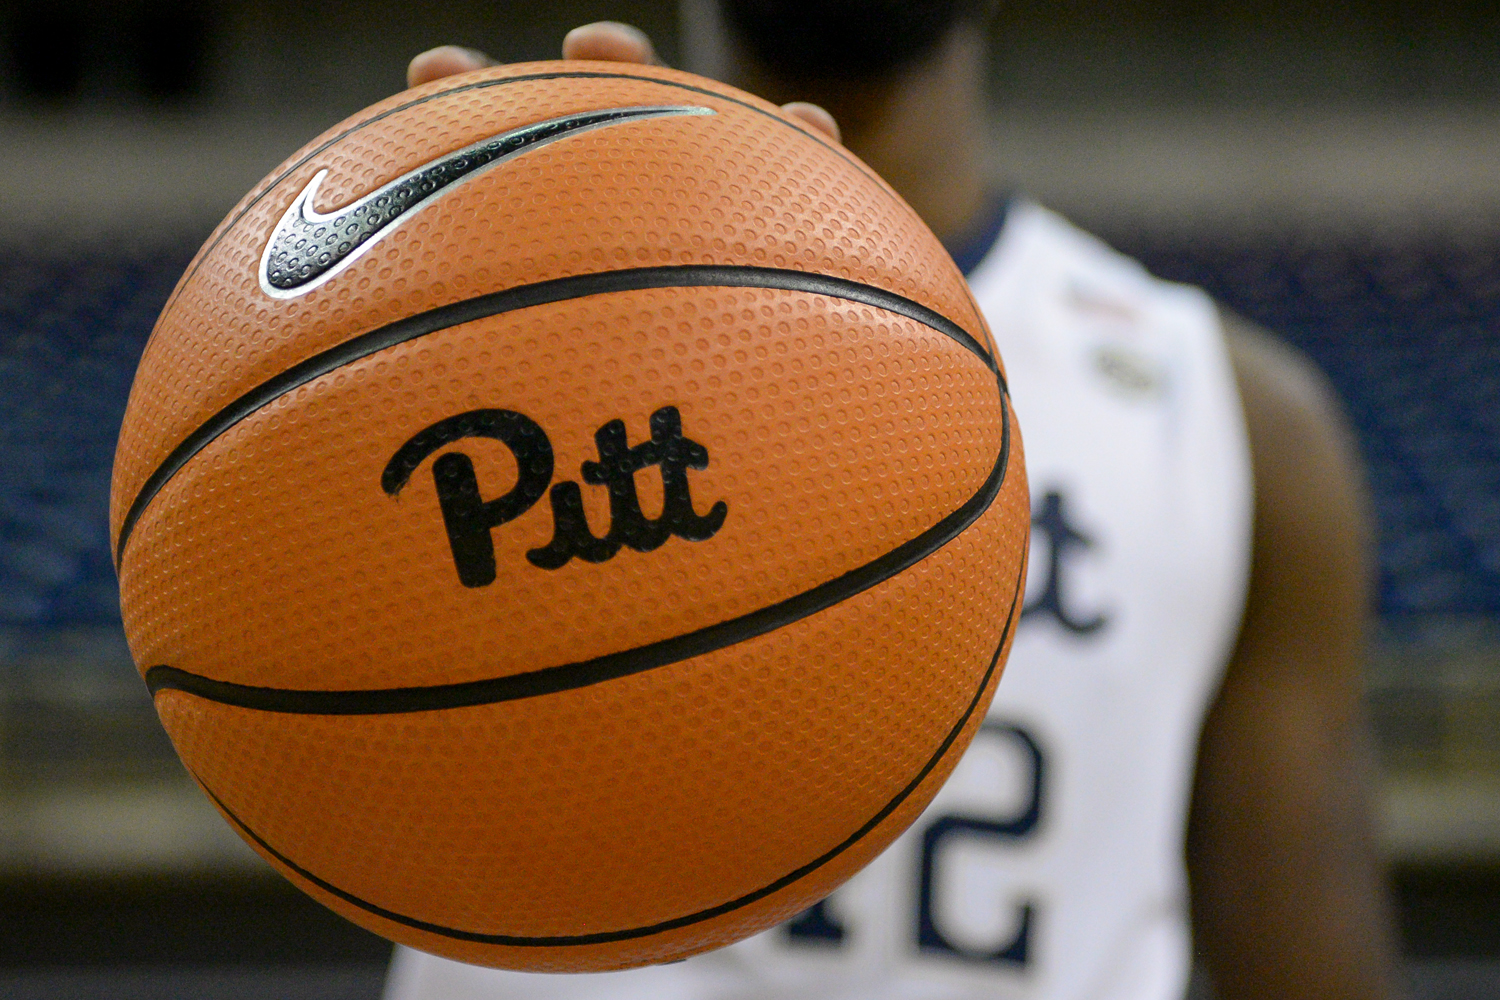 Pitt Men's Basketball currently has four-star small forward Gerald Drumgoole and three-star power forward Karim Coulibaly committed for the 2019 season.